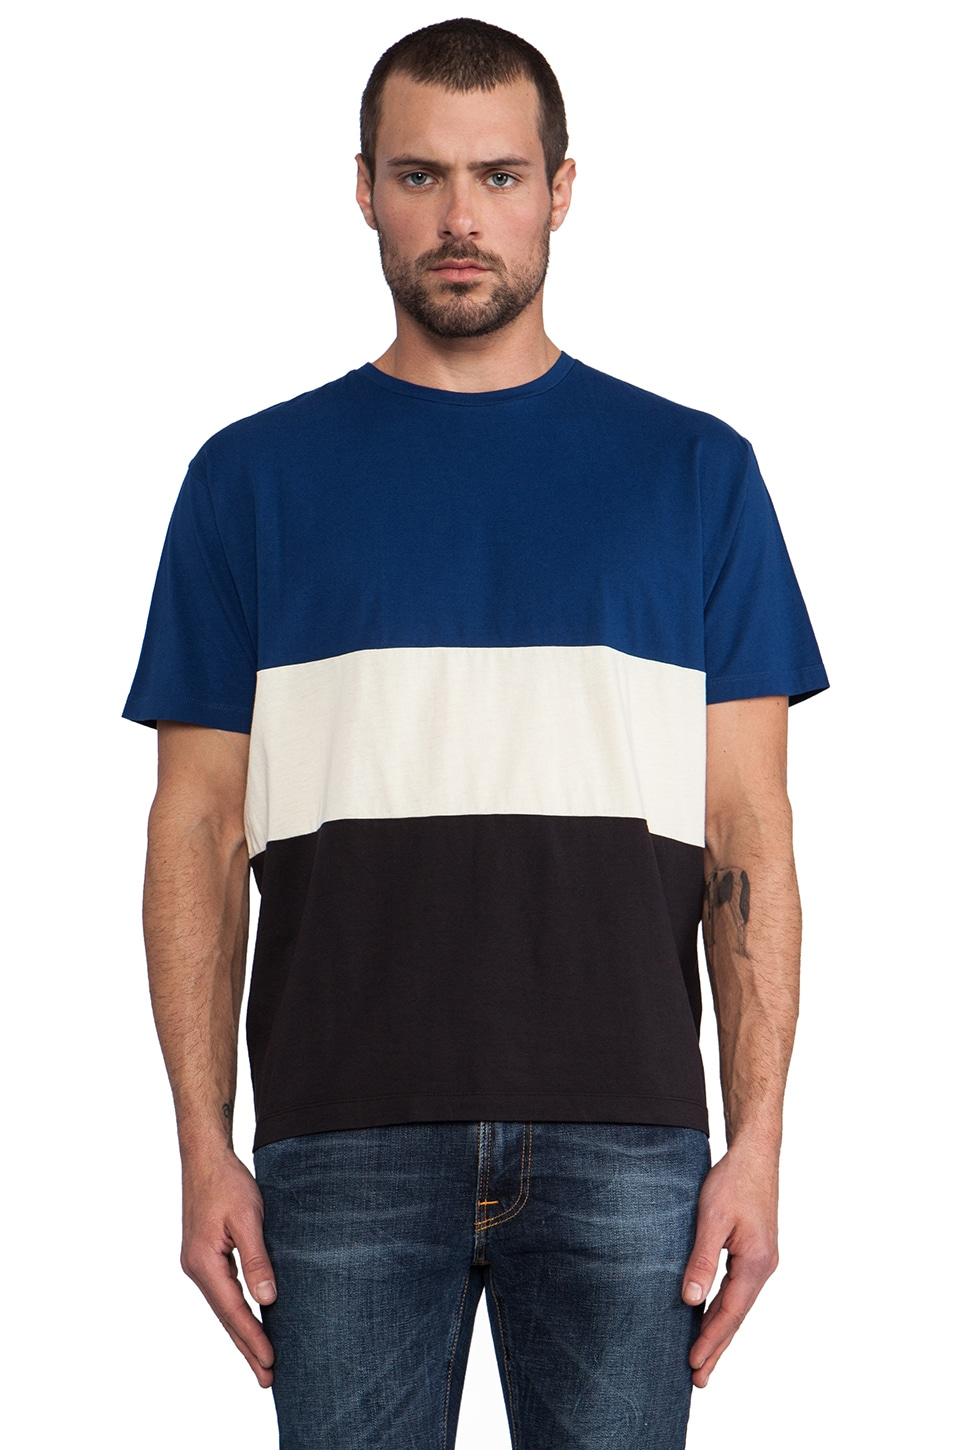 Marc by Marc Jacobs Hounslow Jersey Stripe Tee in Icelandic Blue Multi